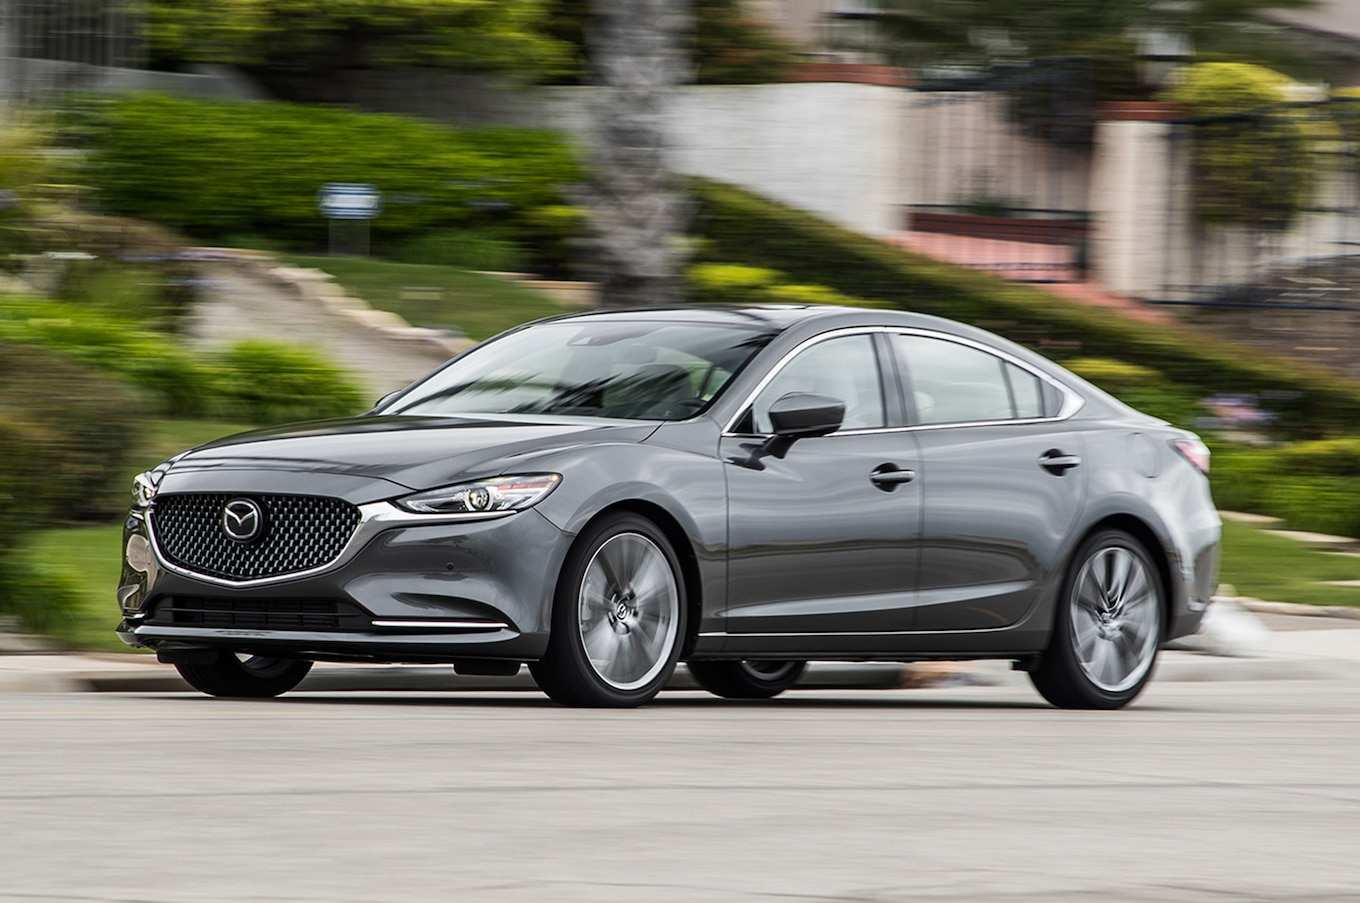 27 Great New 2019 Mazda 6 Spy Shots Redesign Price And Review Review by New 2019 Mazda 6 Spy Shots Redesign Price And Review